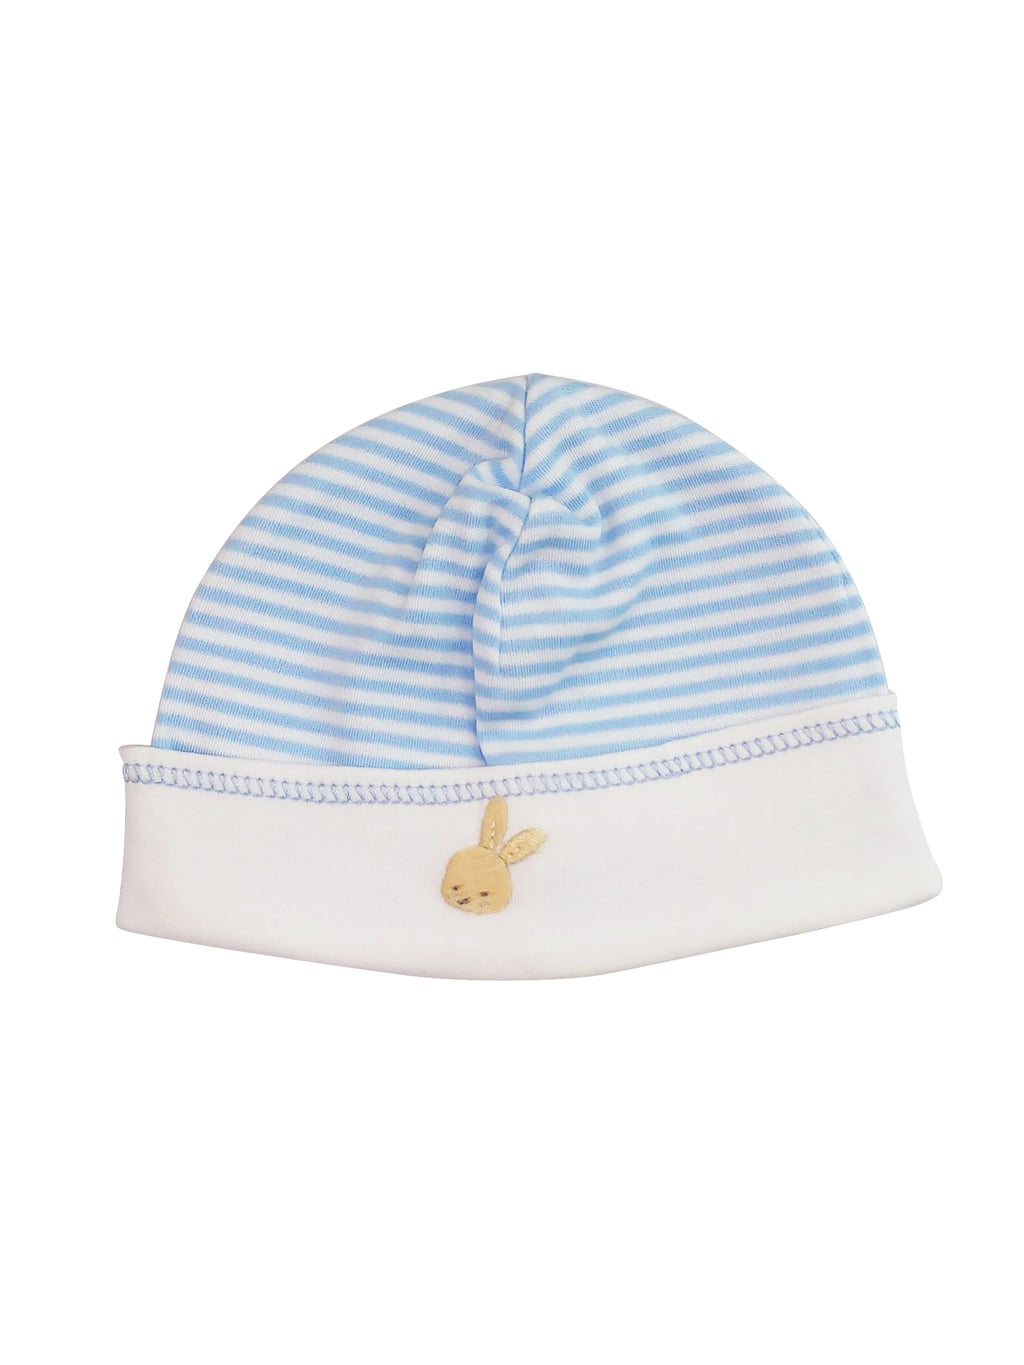 Baby Boy's Blue Striped Bunny Hat - Little Threads Inc. Children's Clothing